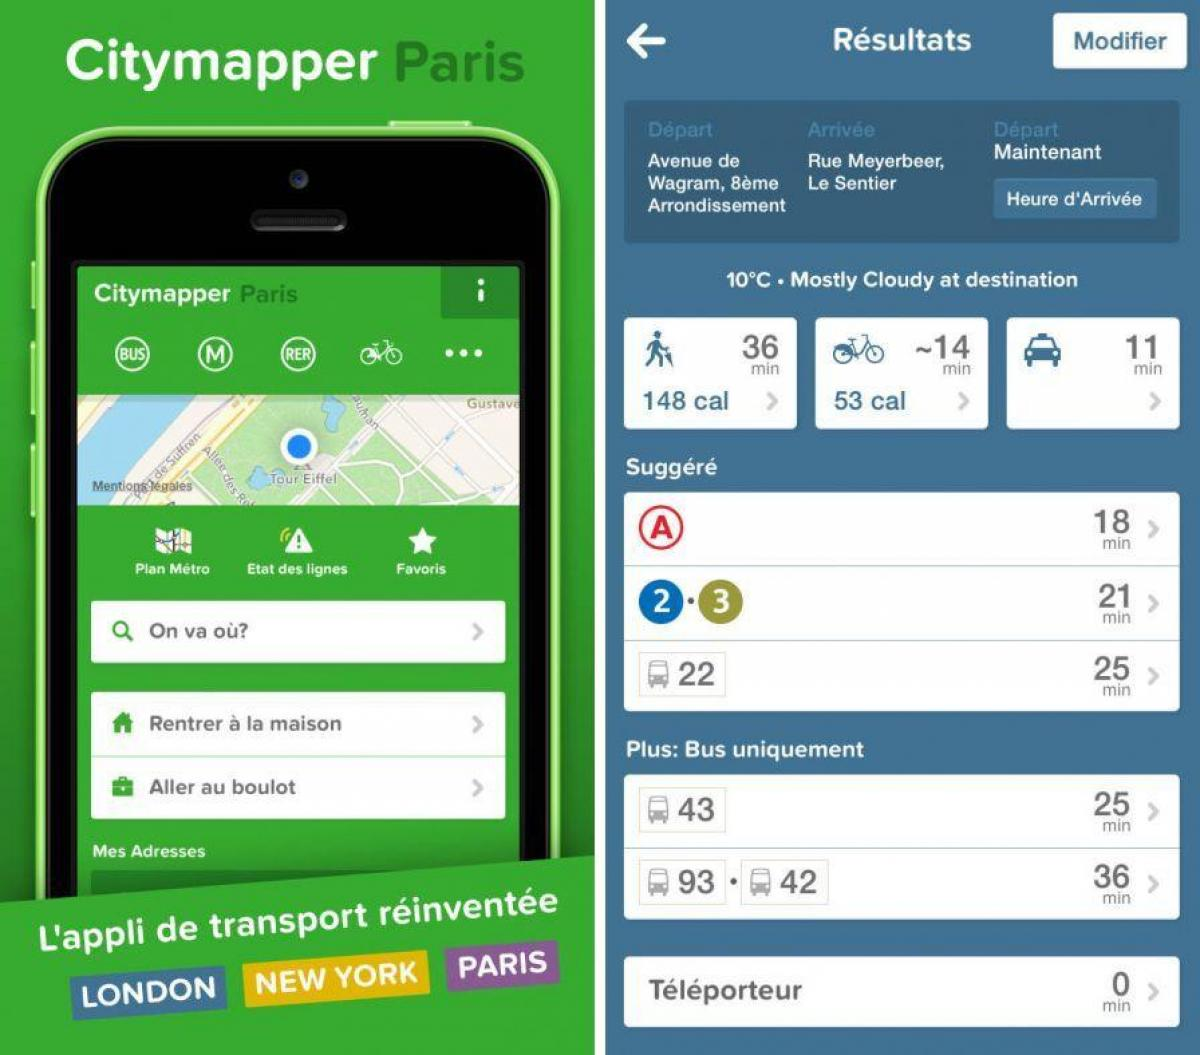 Carte de citymapper Paris